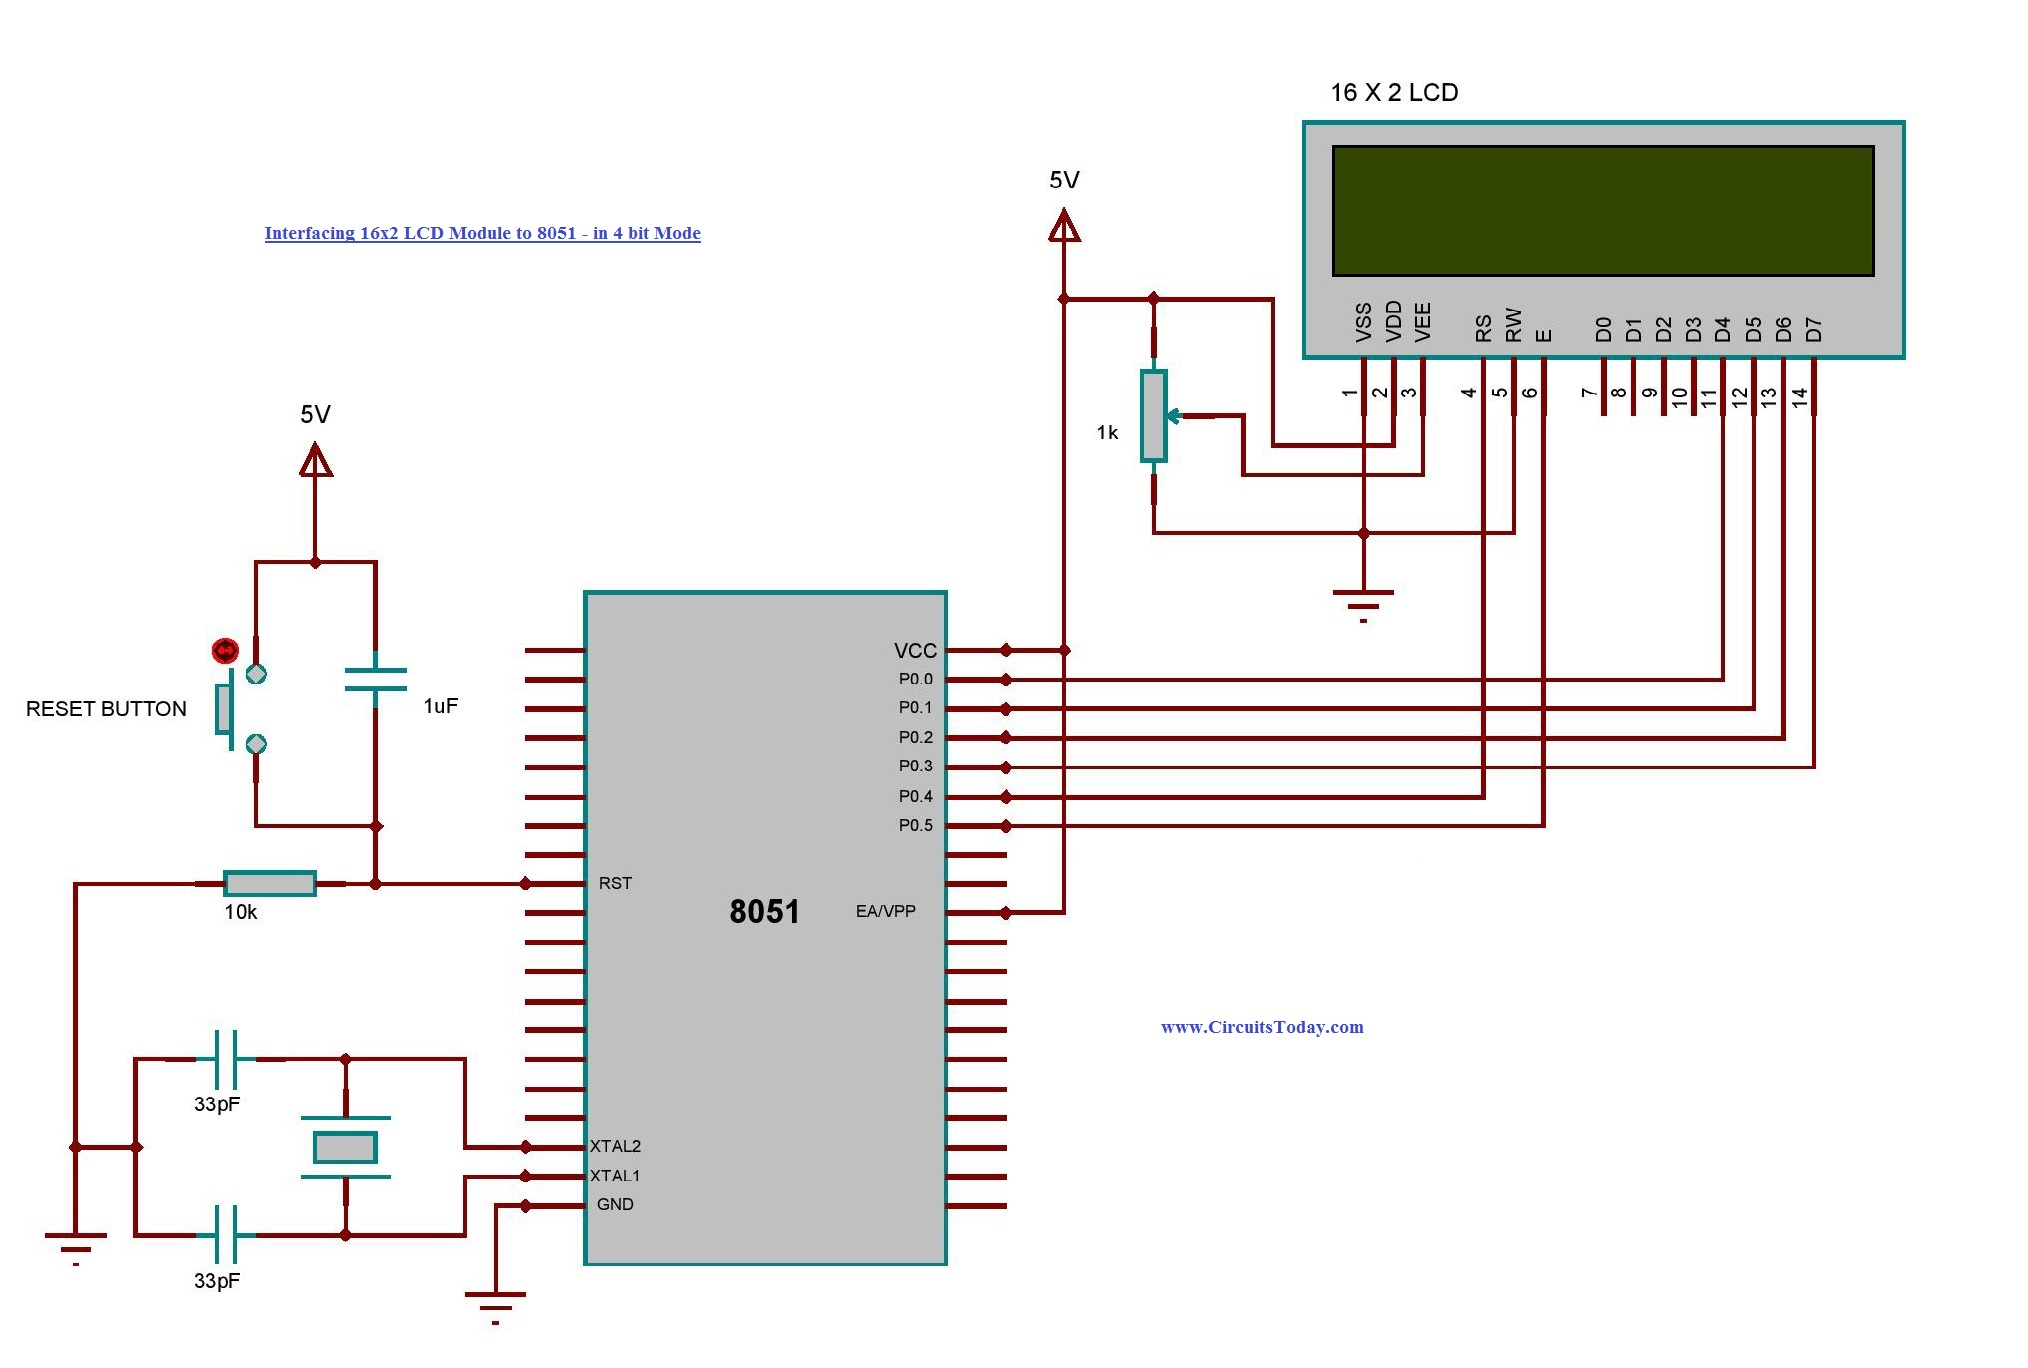 Interfacing 16x2 Lcd With 8051 Microcontroller Module Theory Schematic Diagram X2 02 To In 4 Bit Mode